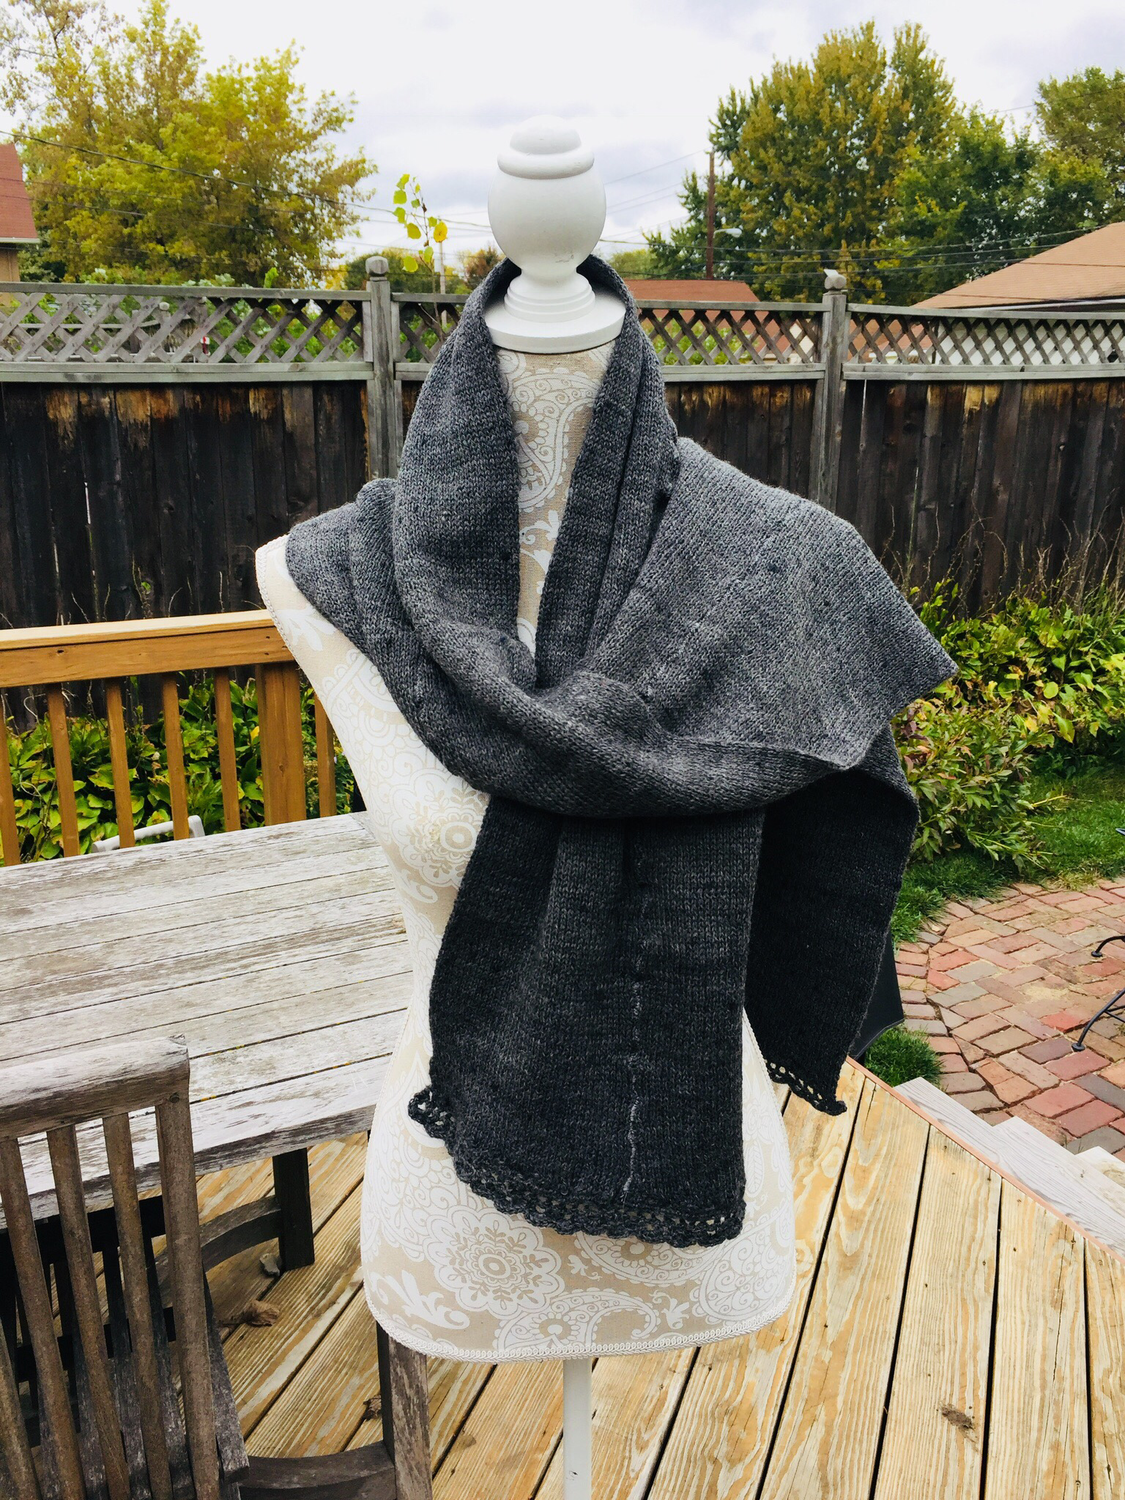 Charcoal Gray Wool Bulky Scarf or Shawl